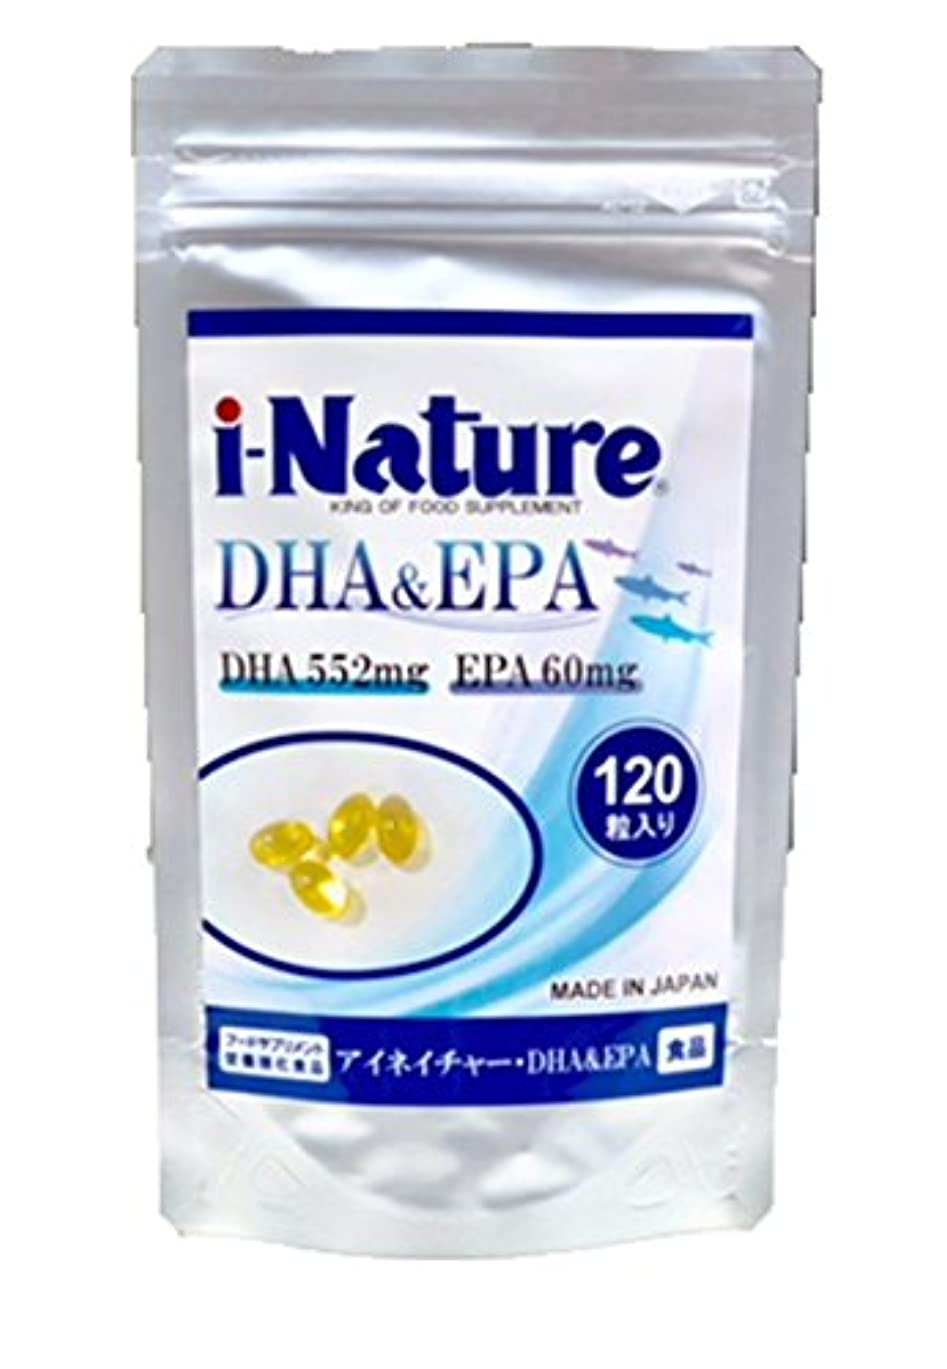 i-Nature DHA&EPA